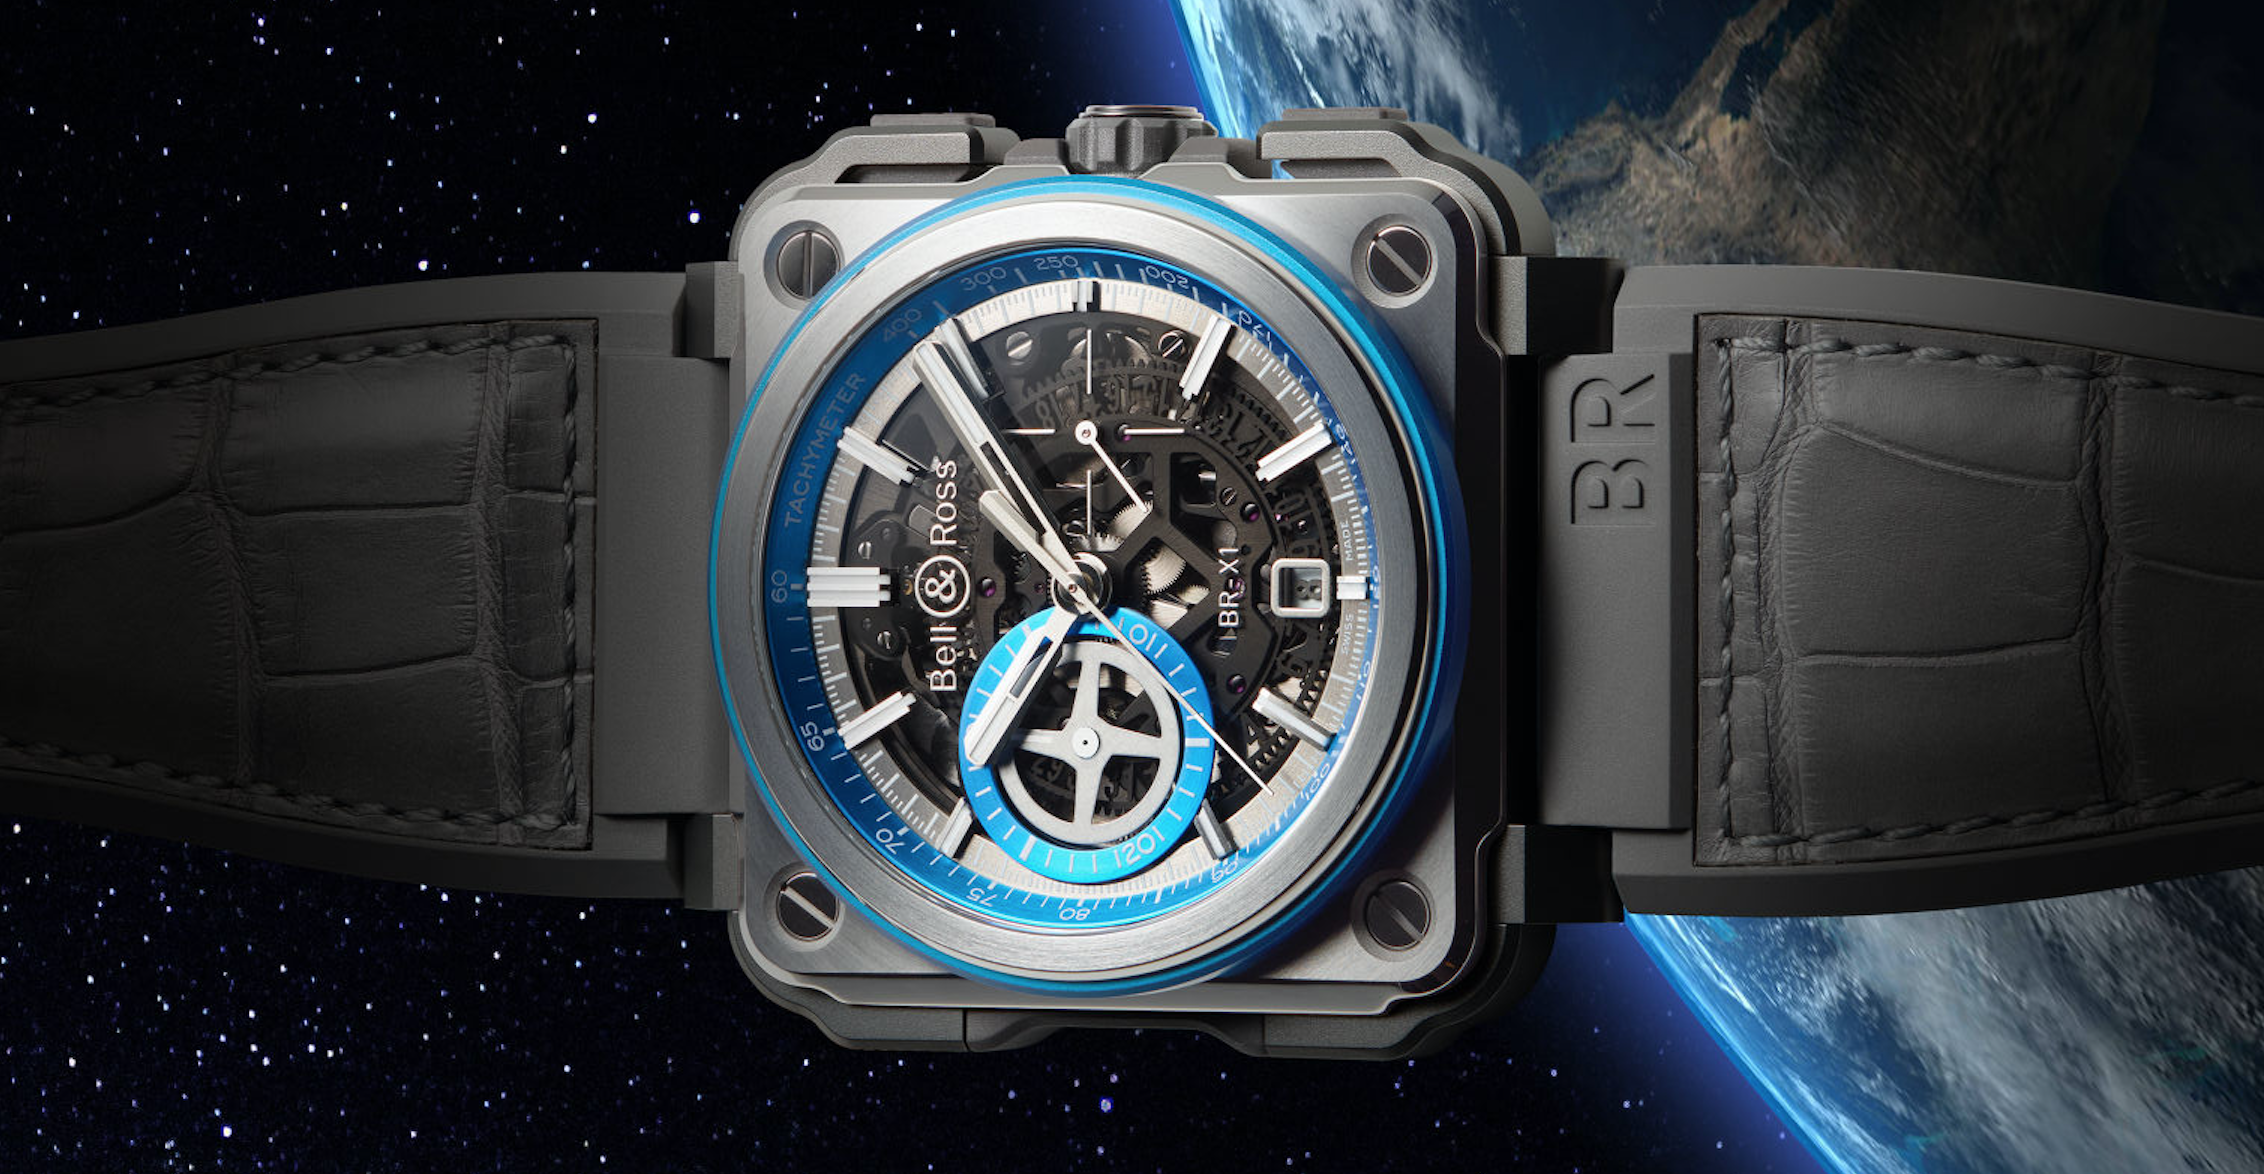 Bell&Ross Hyperstellar BSLW2016 4